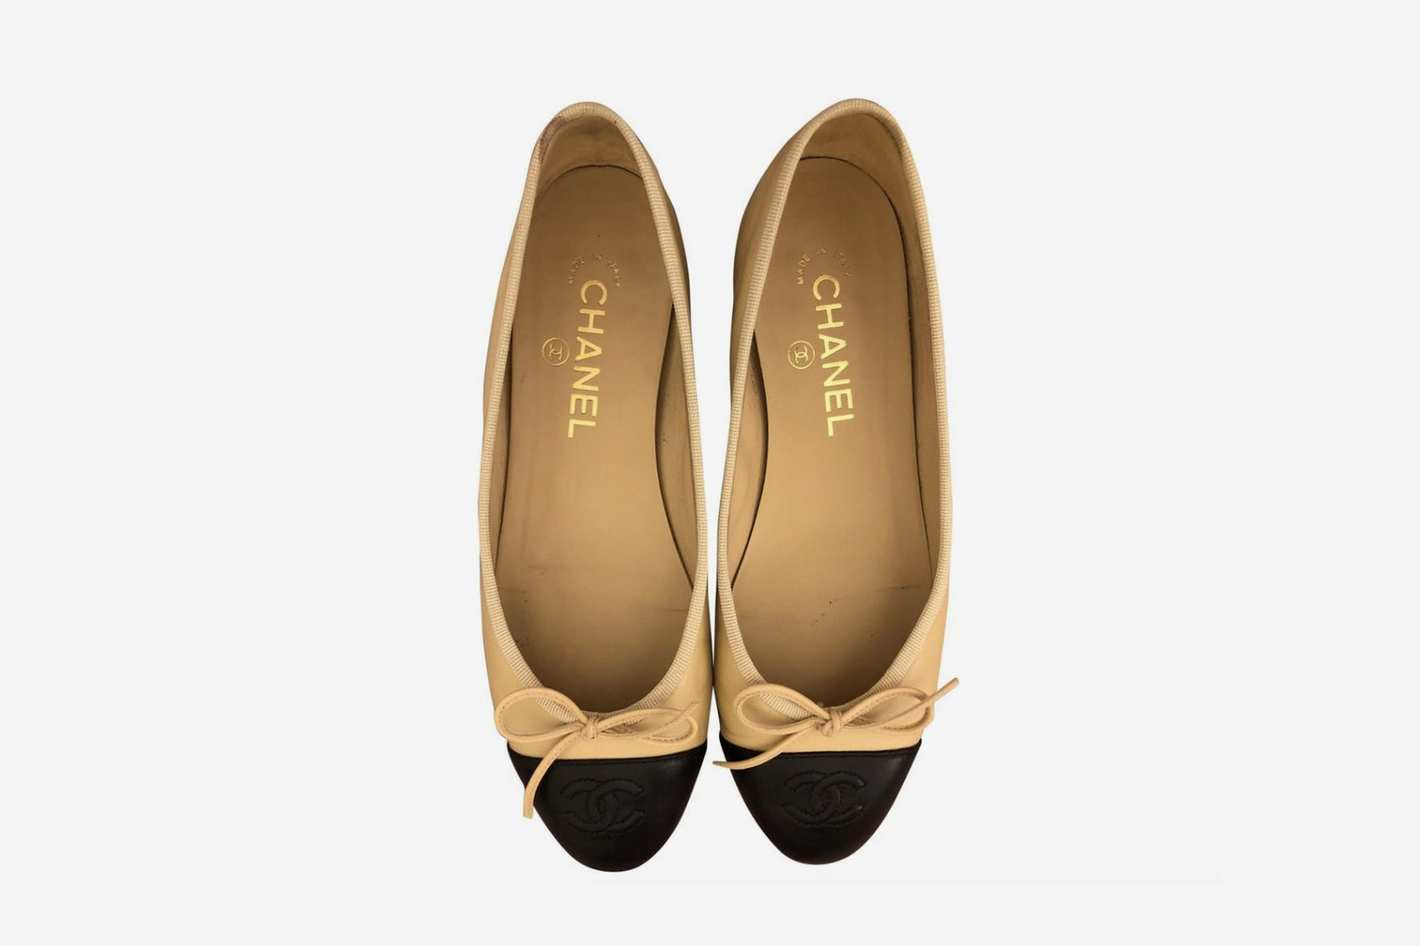 Chanel Ballerina Flats Beige and Patent Leather